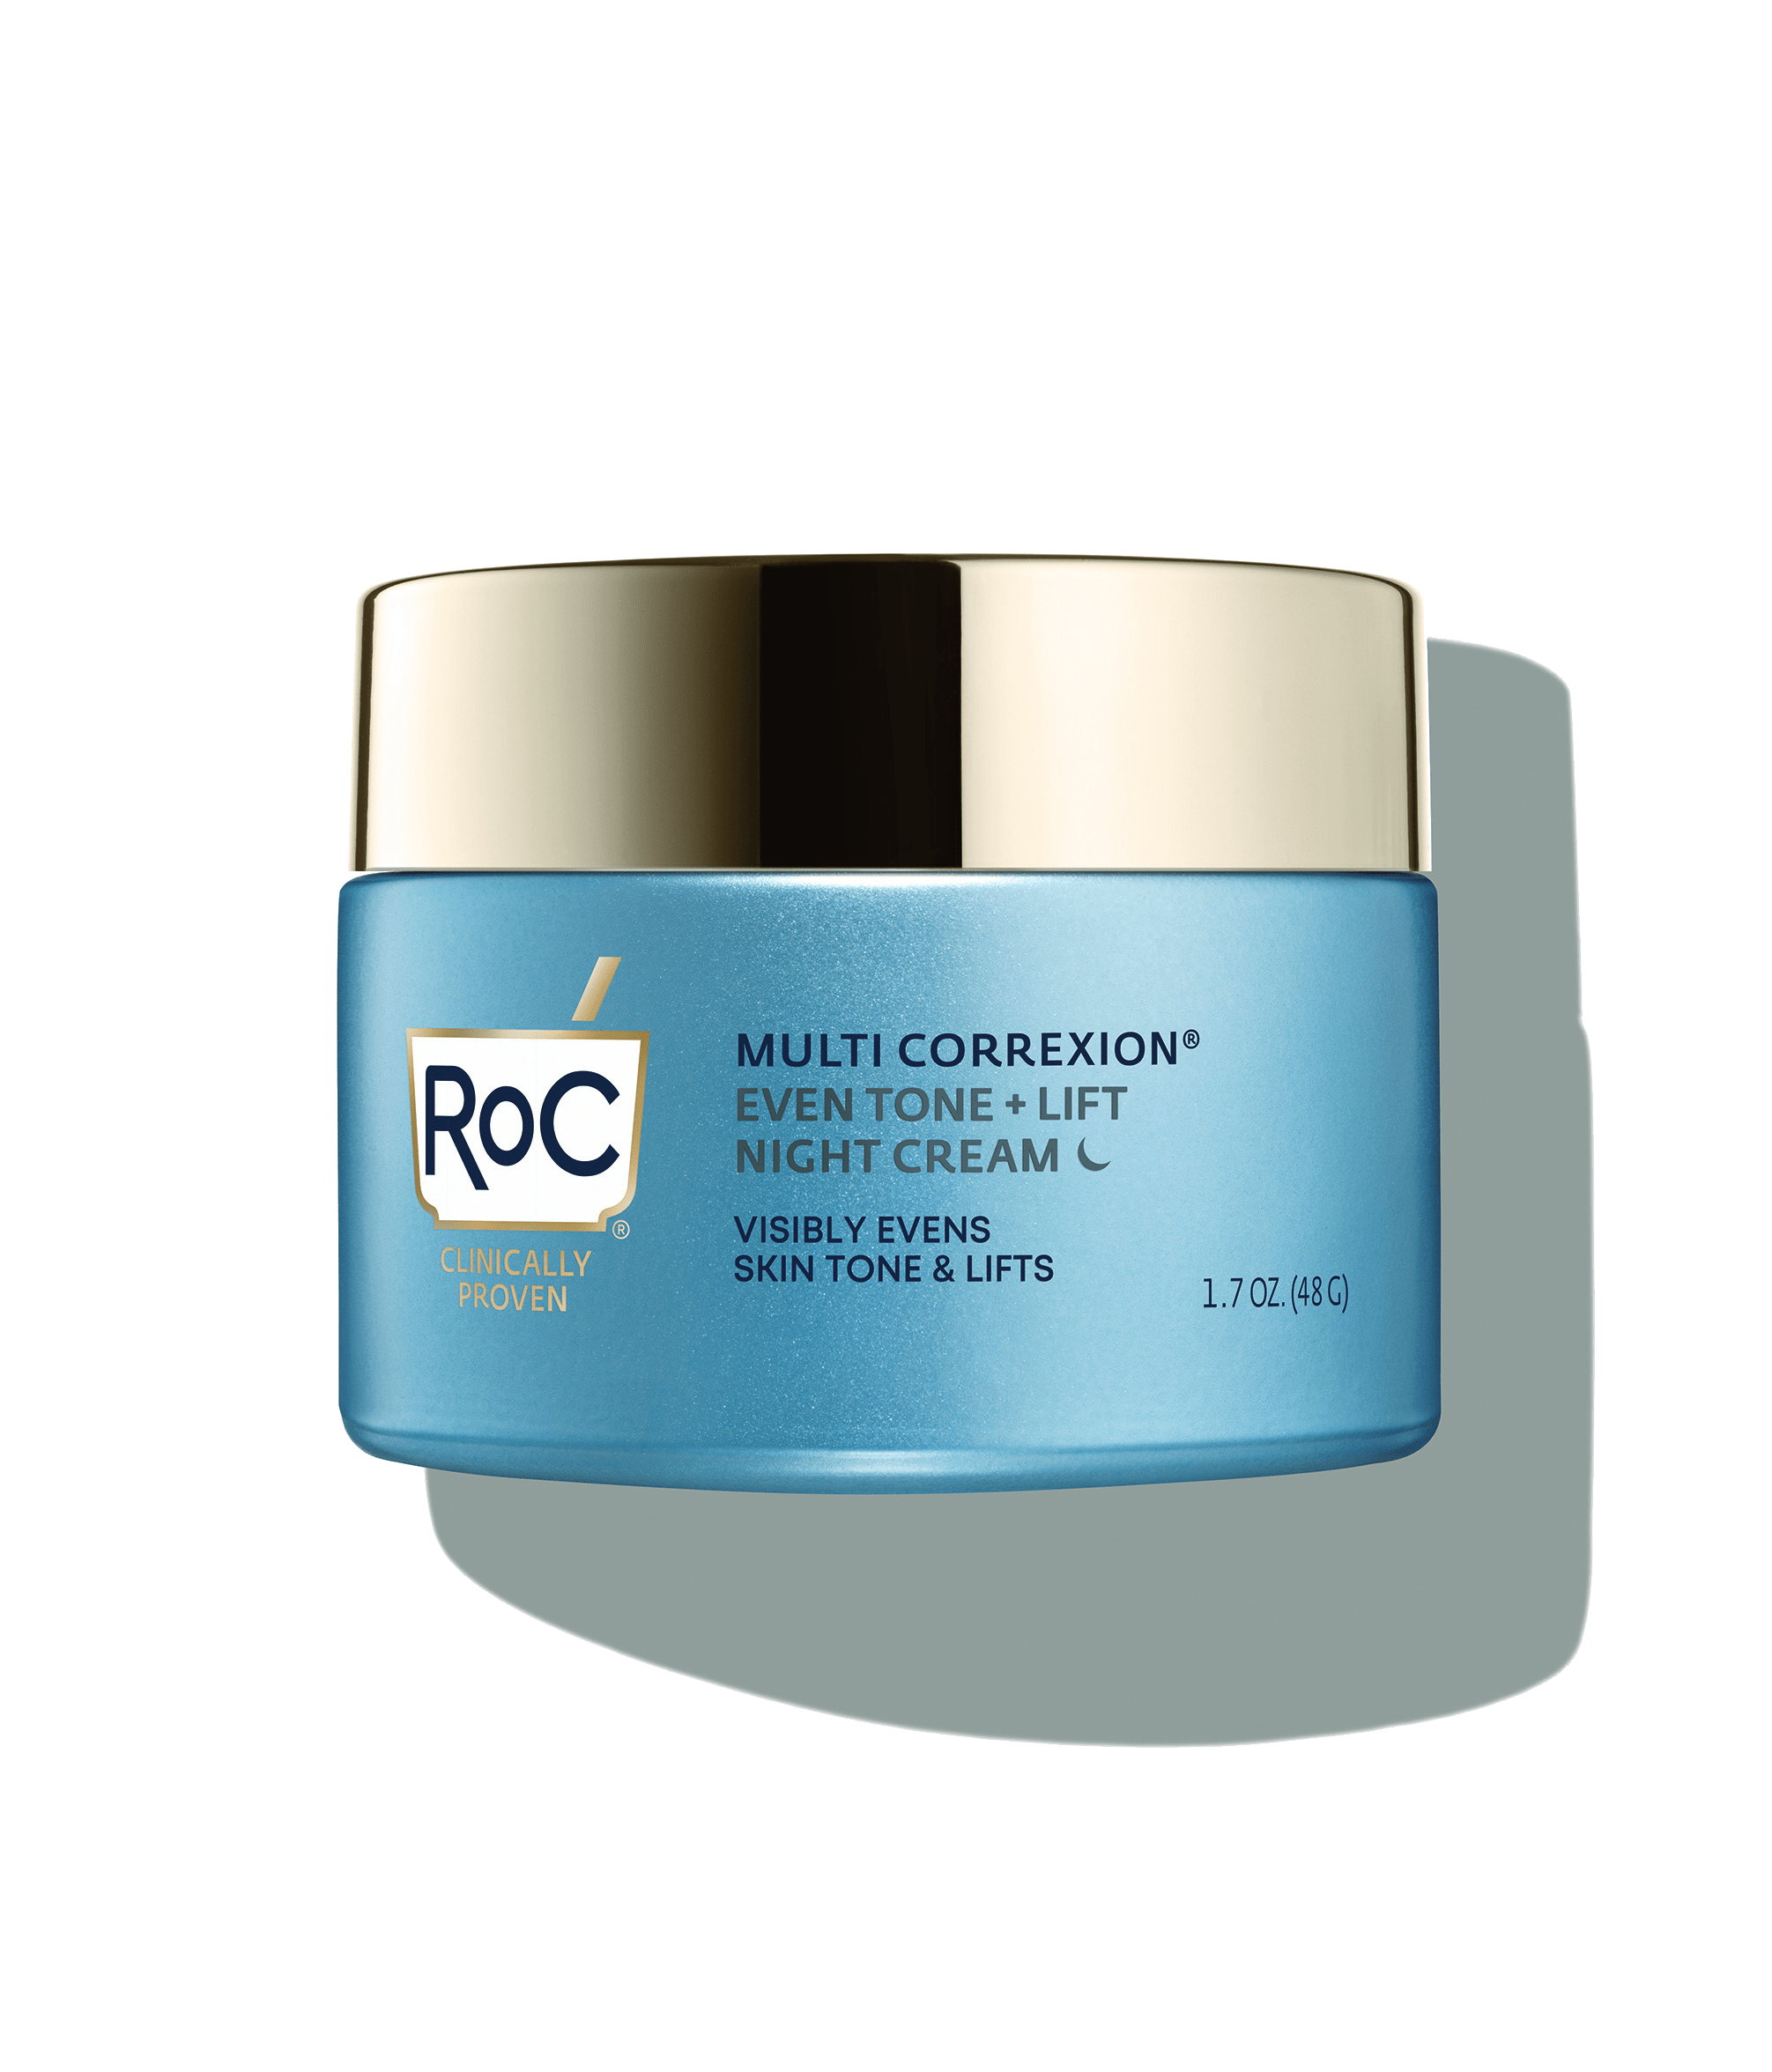 MULTI CORREXION® Even Tone + Lift 5 In 1 Night Cream